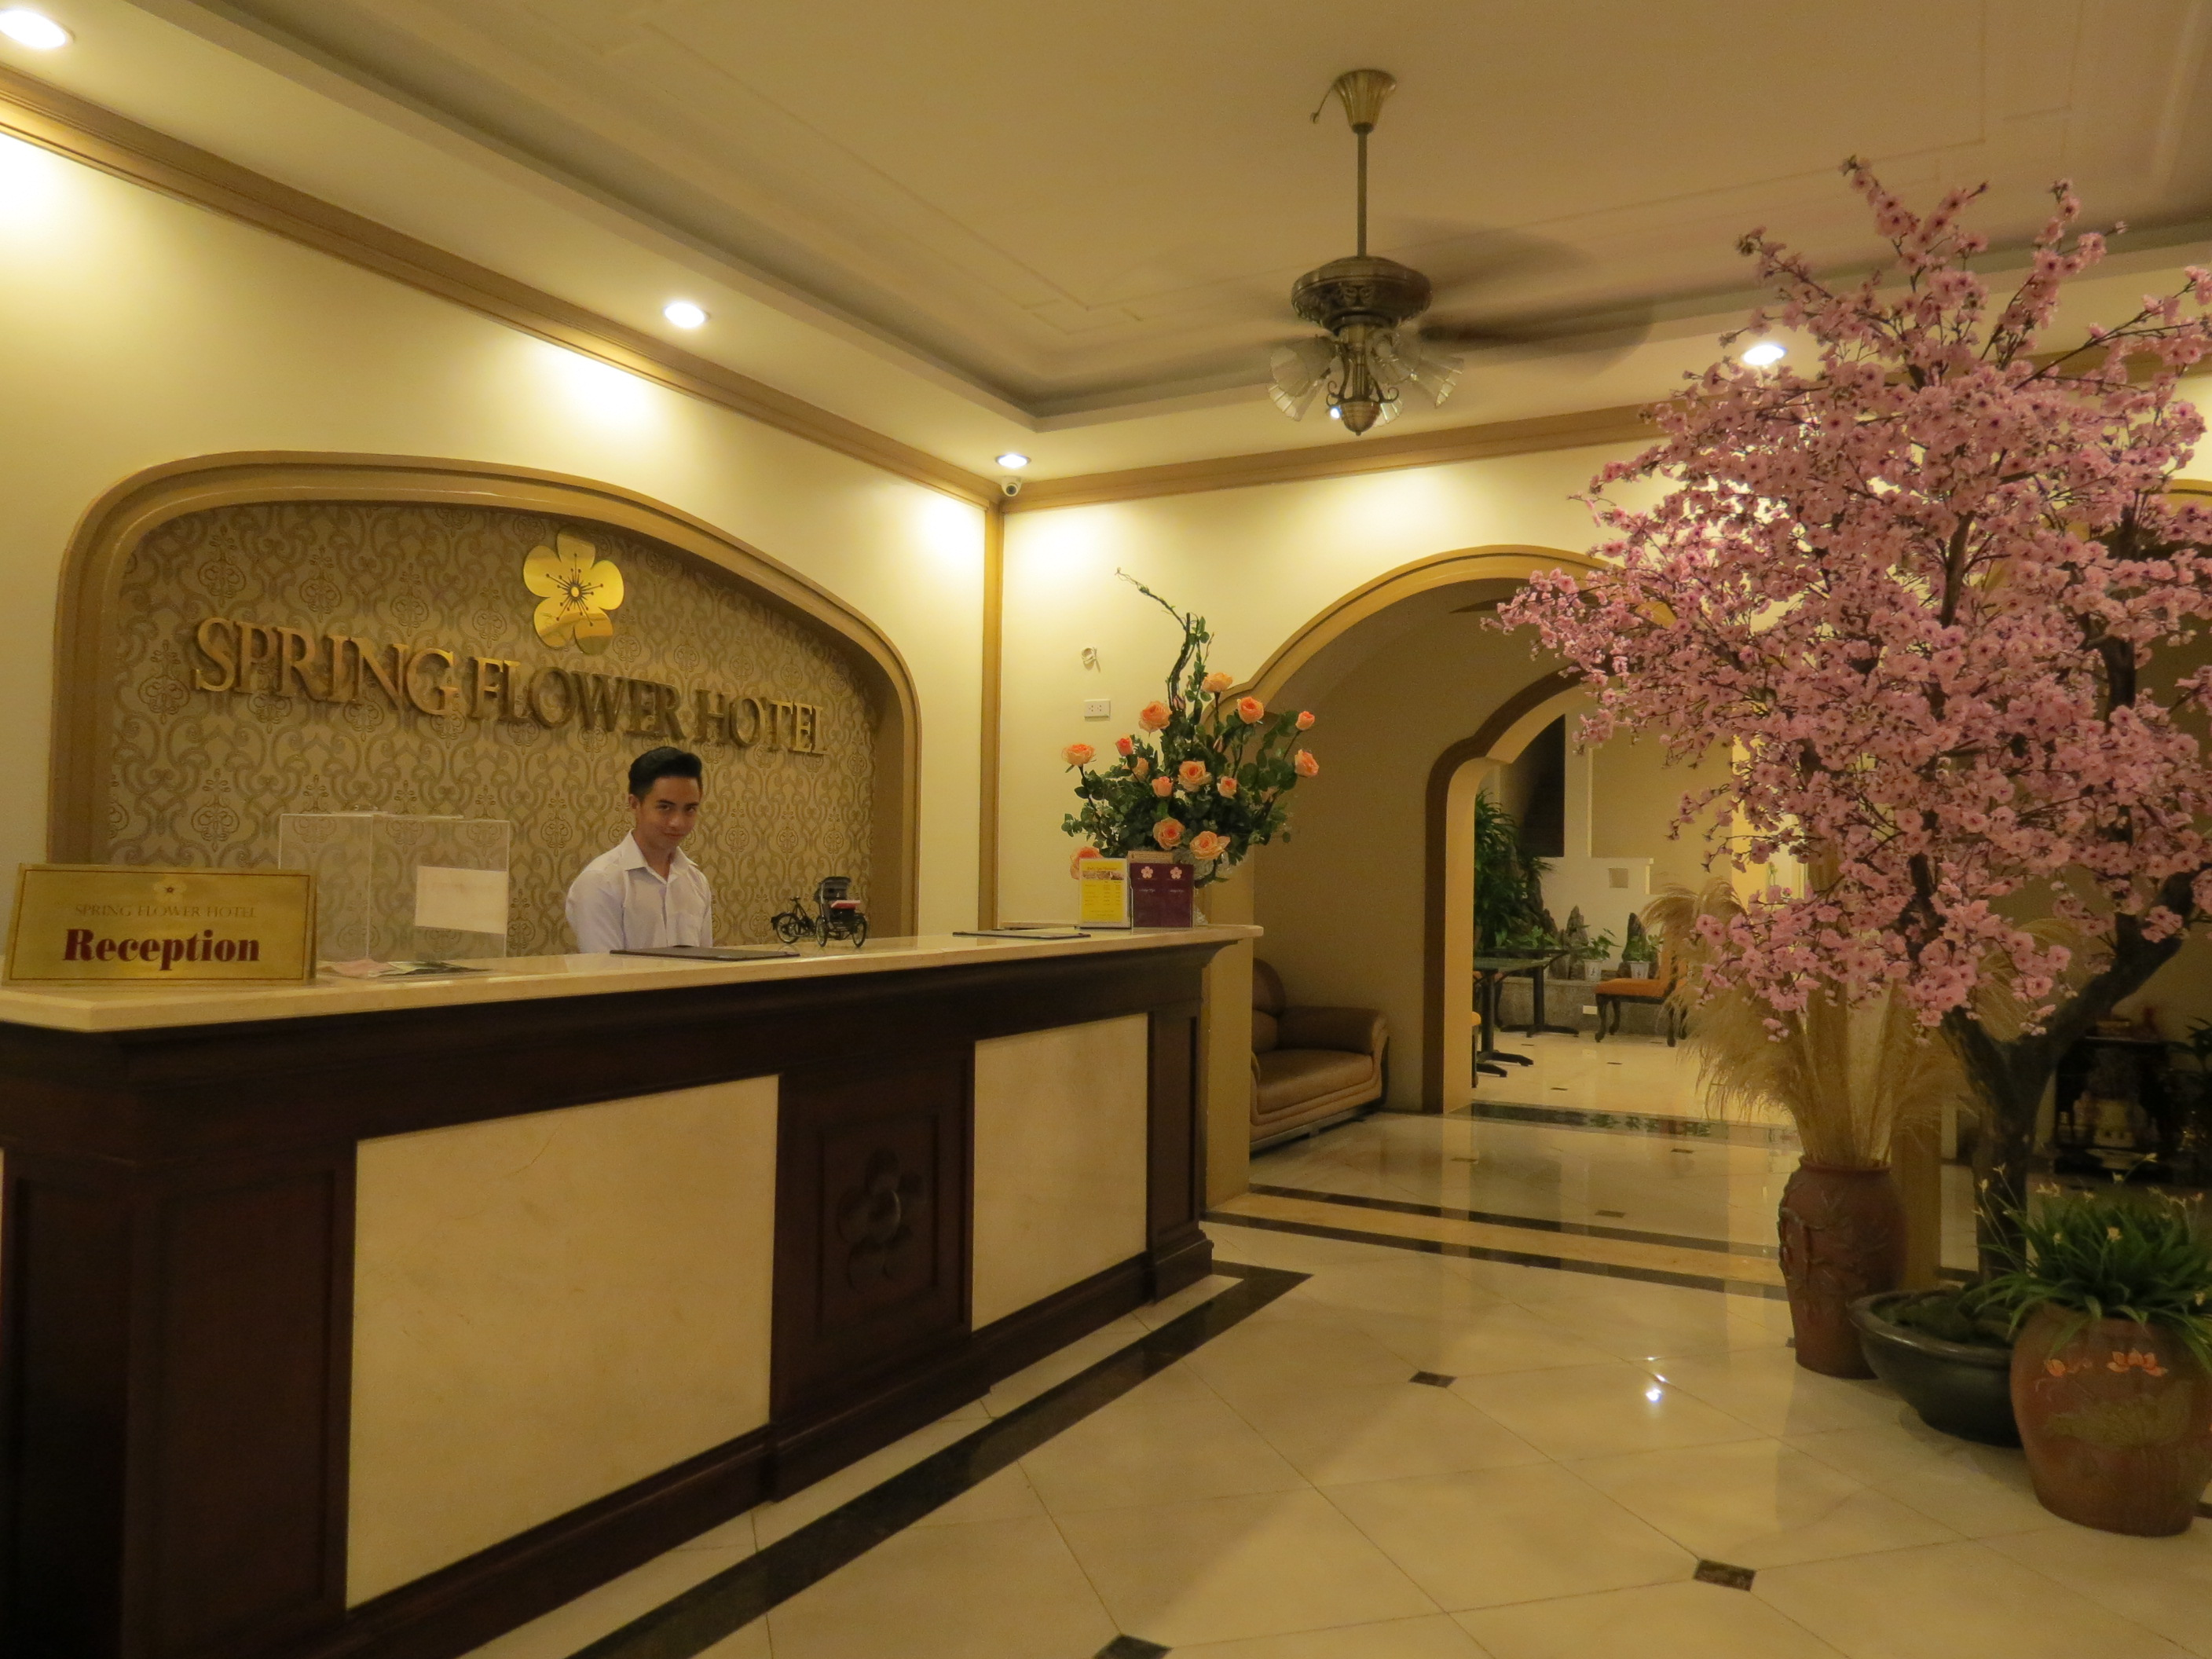 Hotel review spring flower hotel the world by faith as you enter youll see that for a small local hotel the lobby is spacious and well kept mightylinksfo